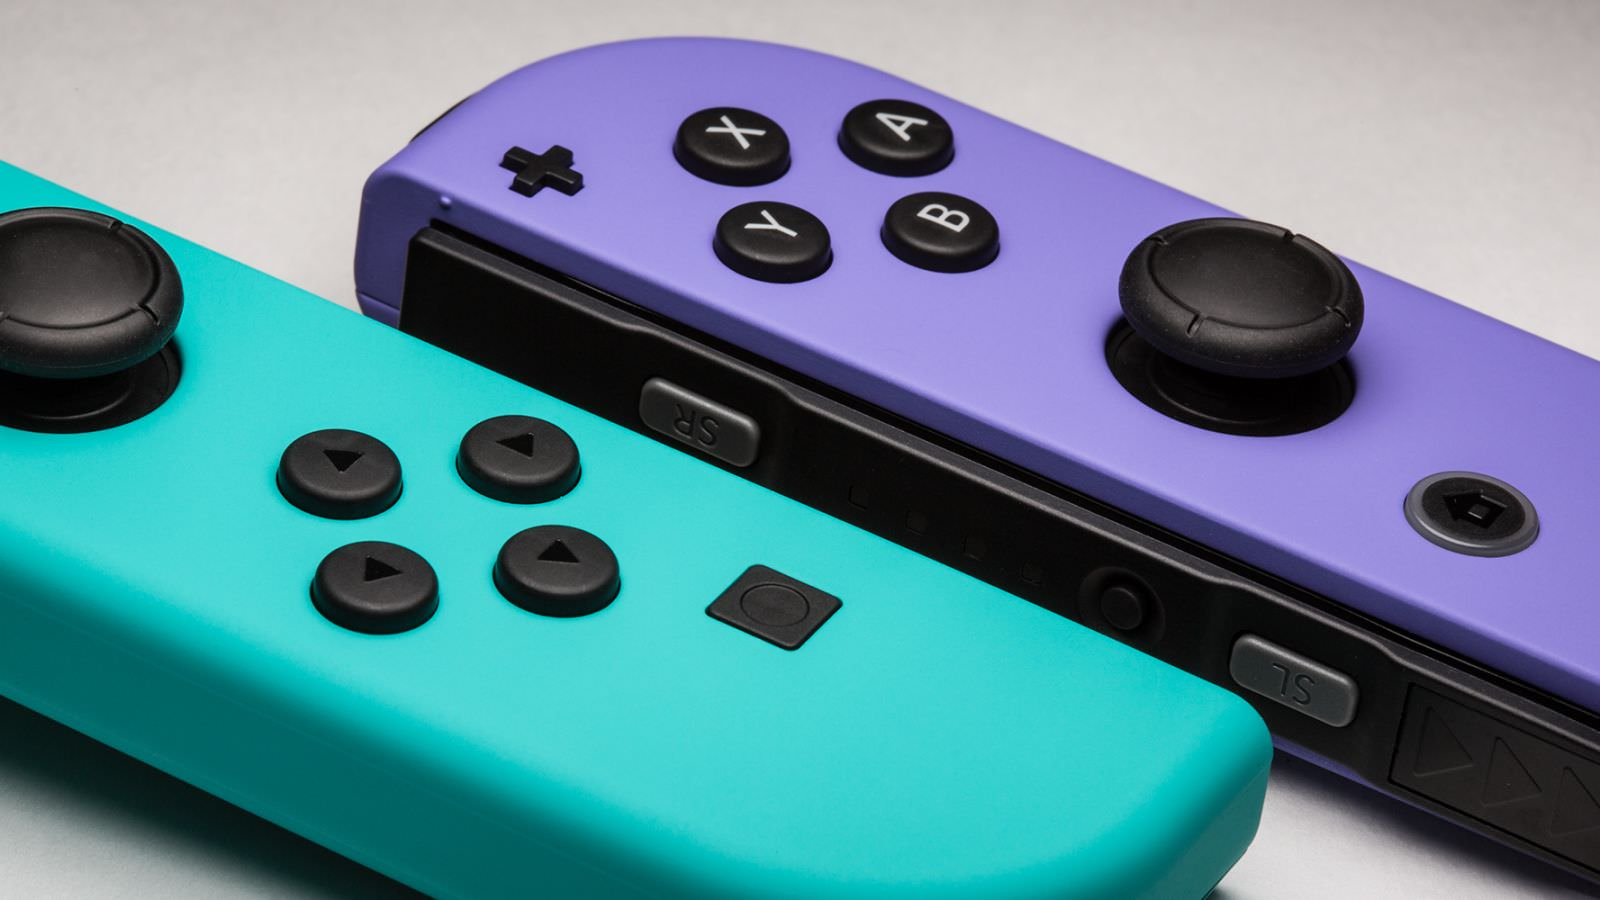 Nintendo Will Fix Broken Joy-Cons For Free, Refund Prior Repairs